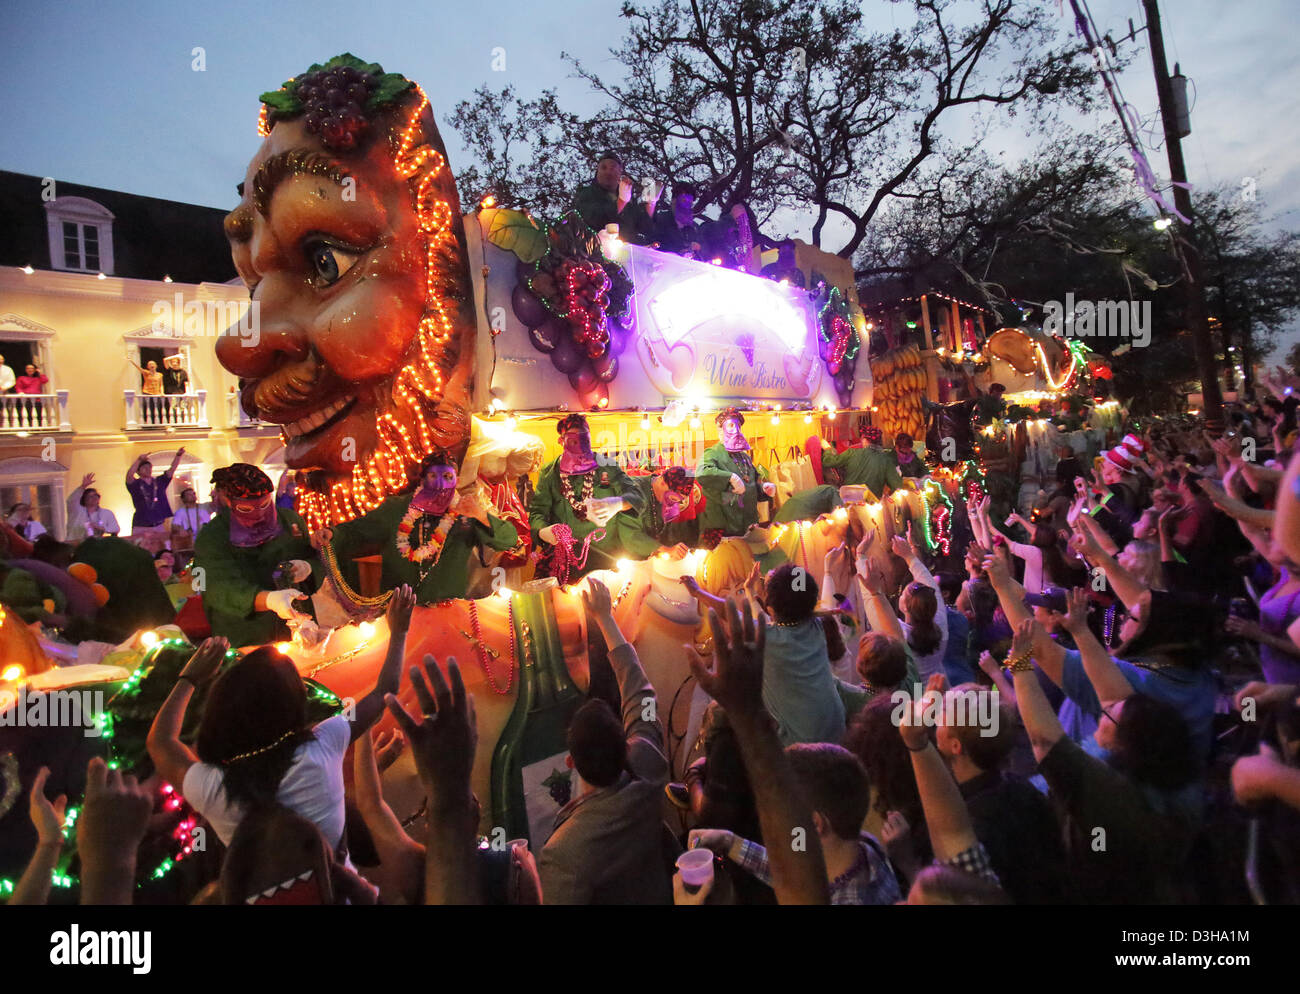 Feb. 10, 2013 - New Orleans, LOUISIANA, UNITED STATES - The crowds cheer for beads as a float in the Krewe of Bacchus Stock Photo